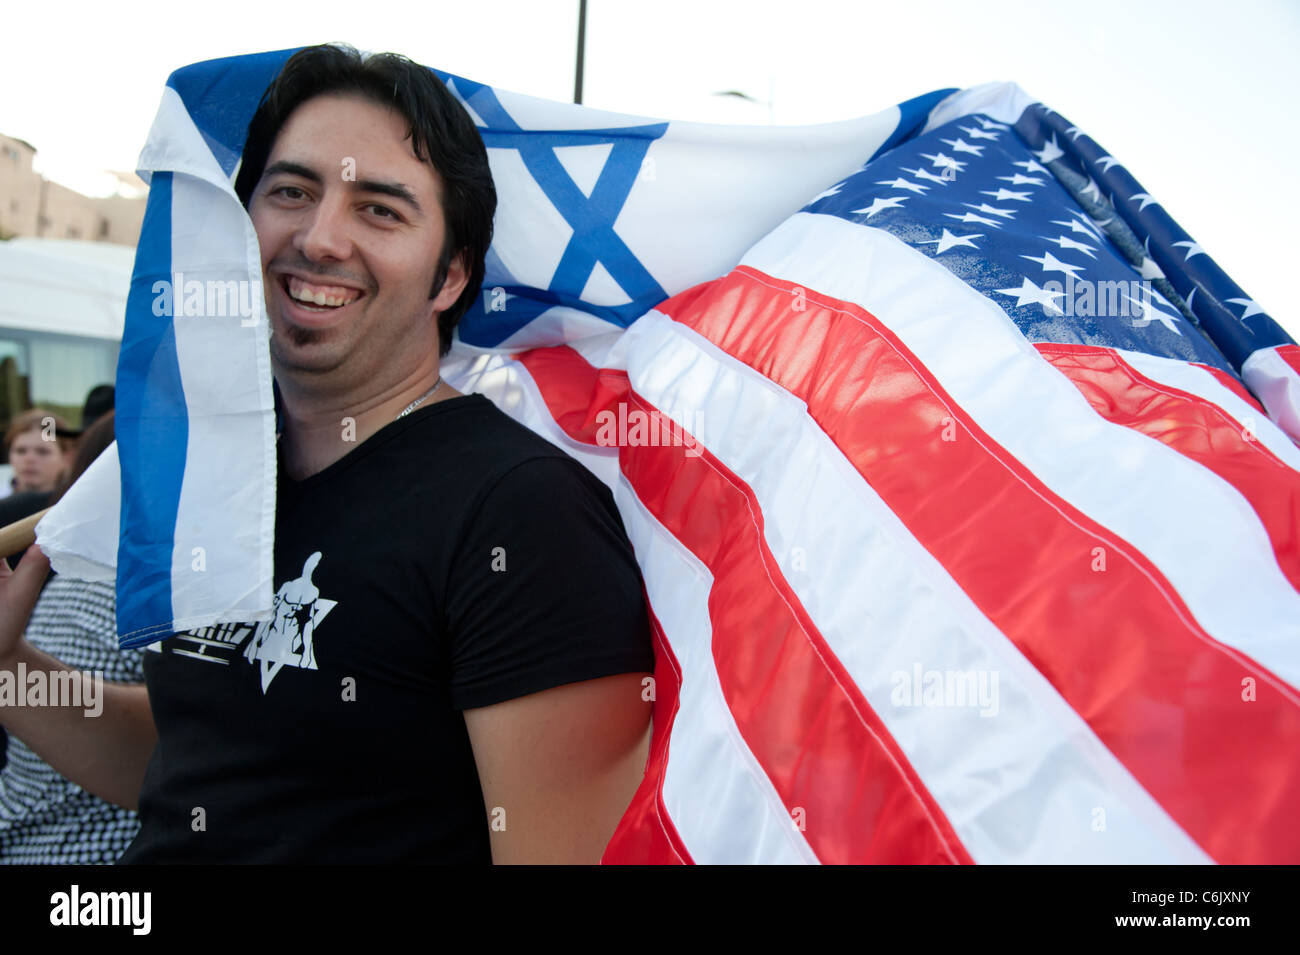 Zionists wave American and Israeli flags at a Glenn Beck rally in Jerusalem. - Stock Image